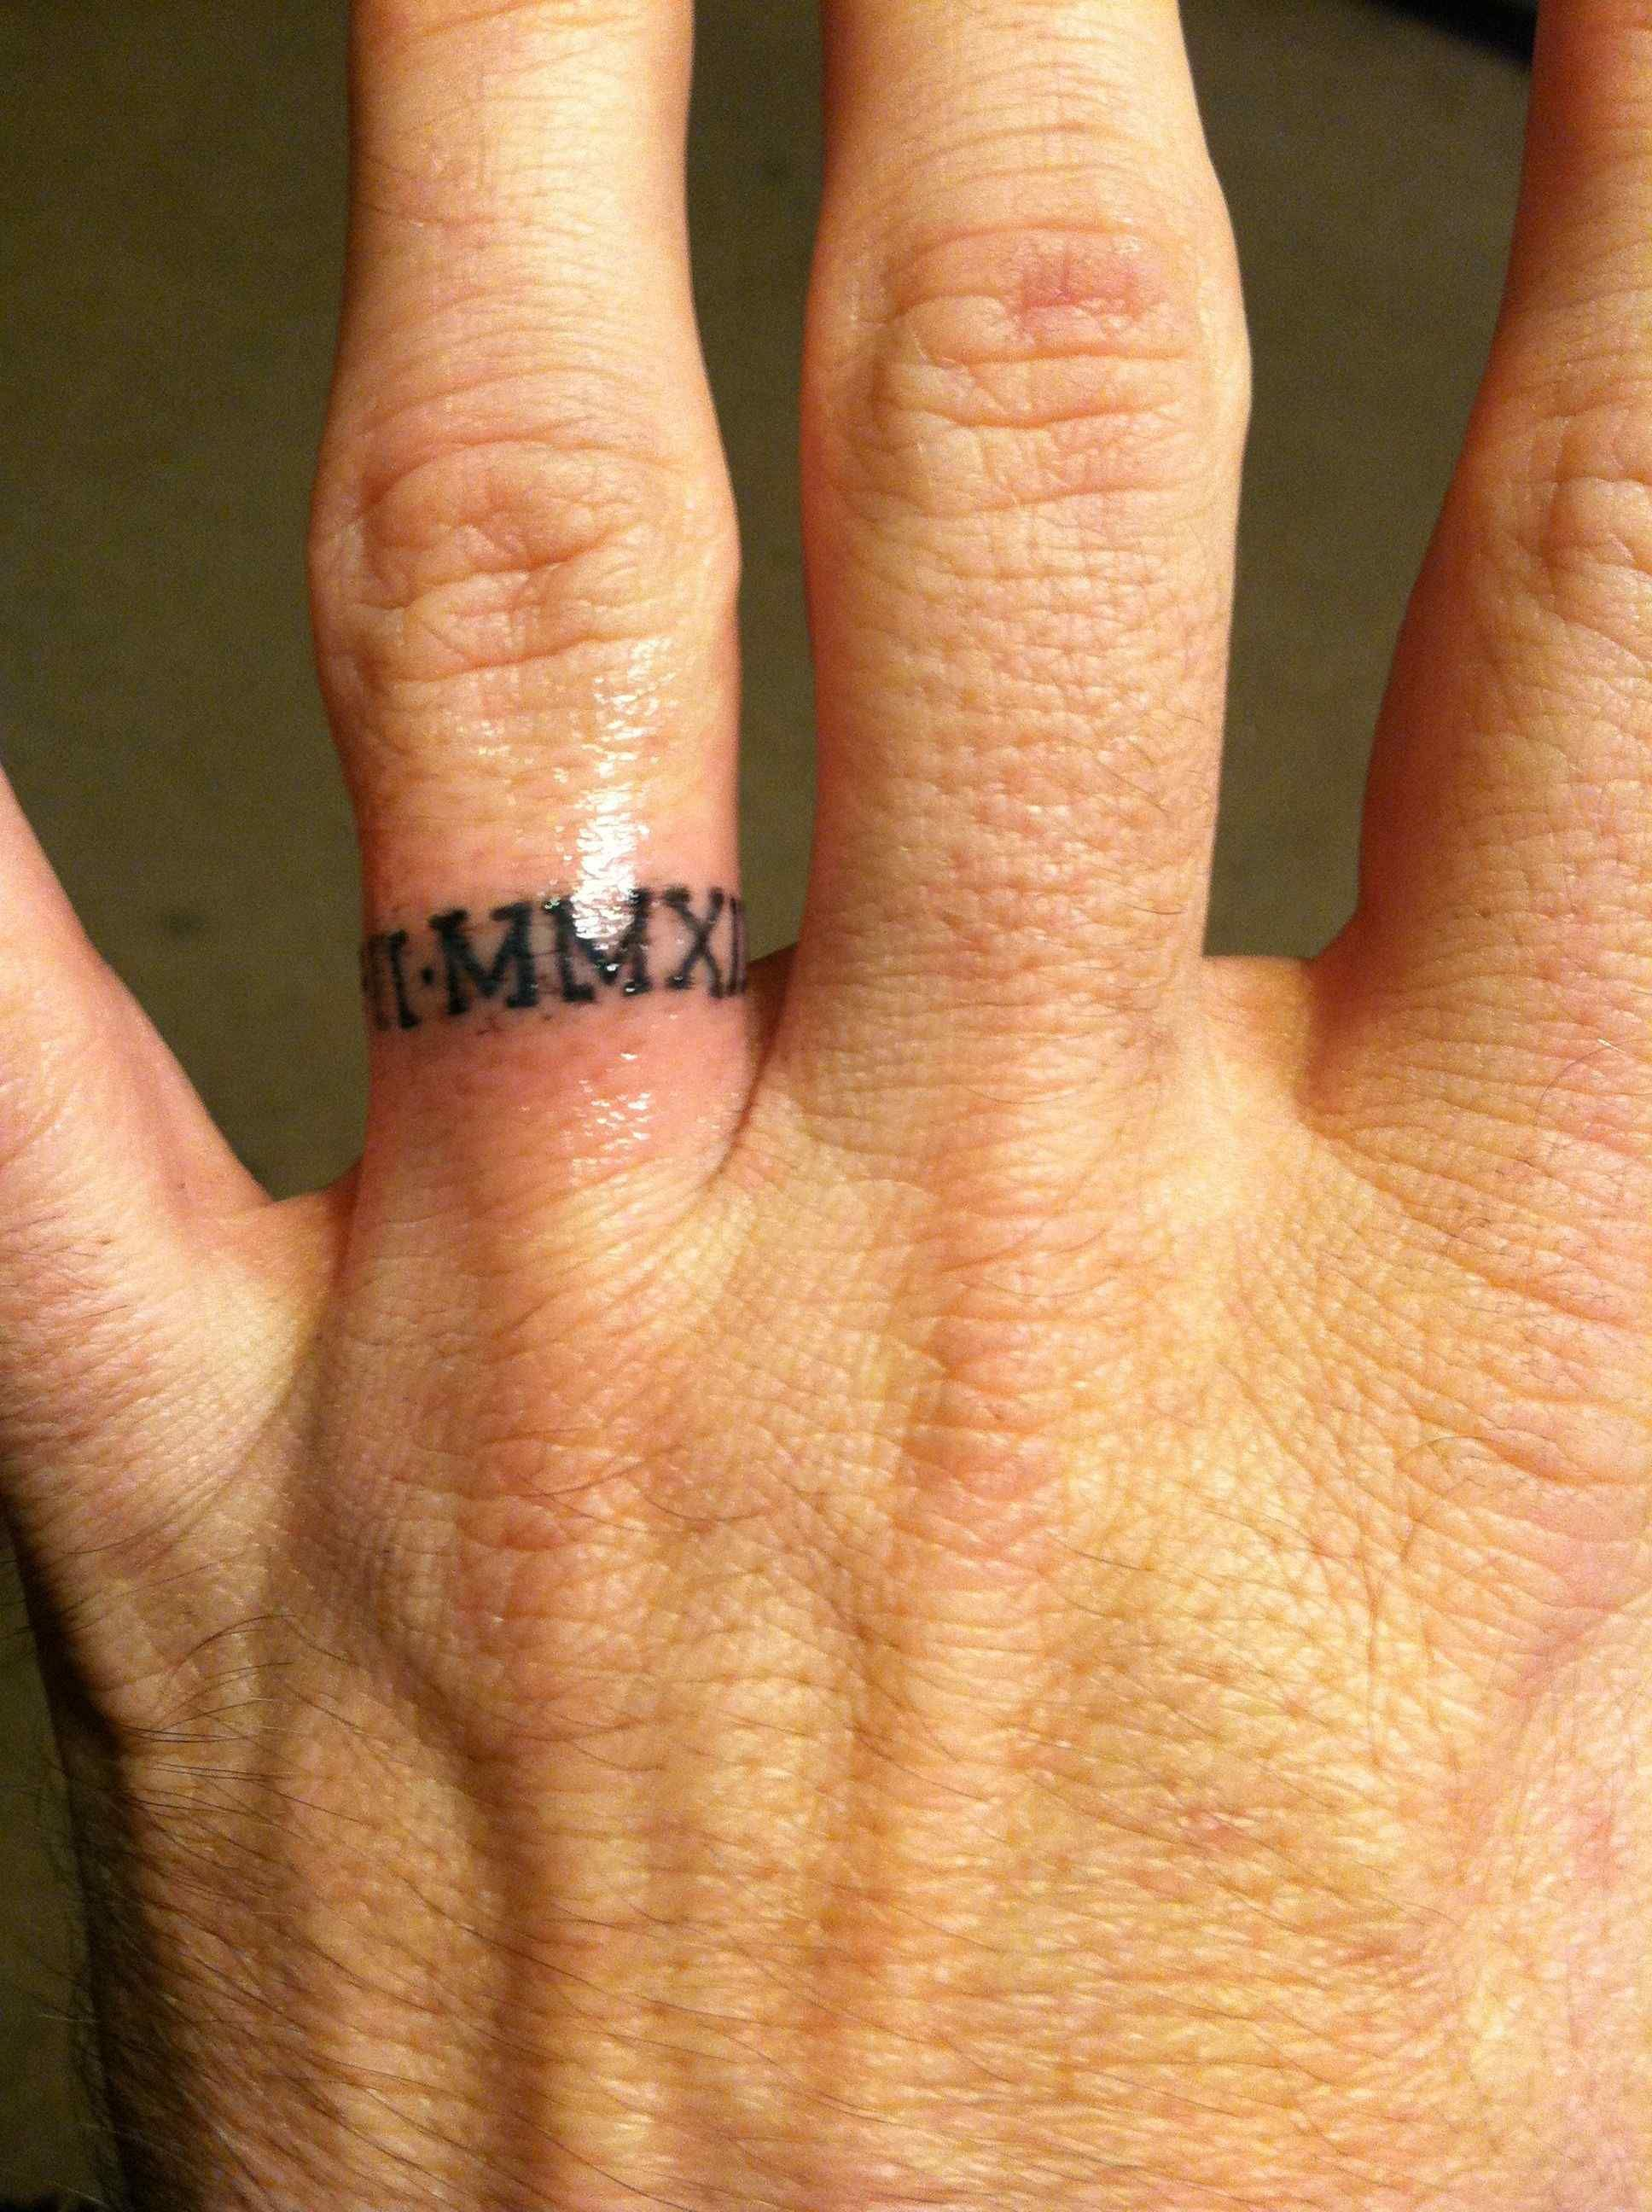 20 Resource To Help You Become Luxury Wedding Ring Tattoo For Men